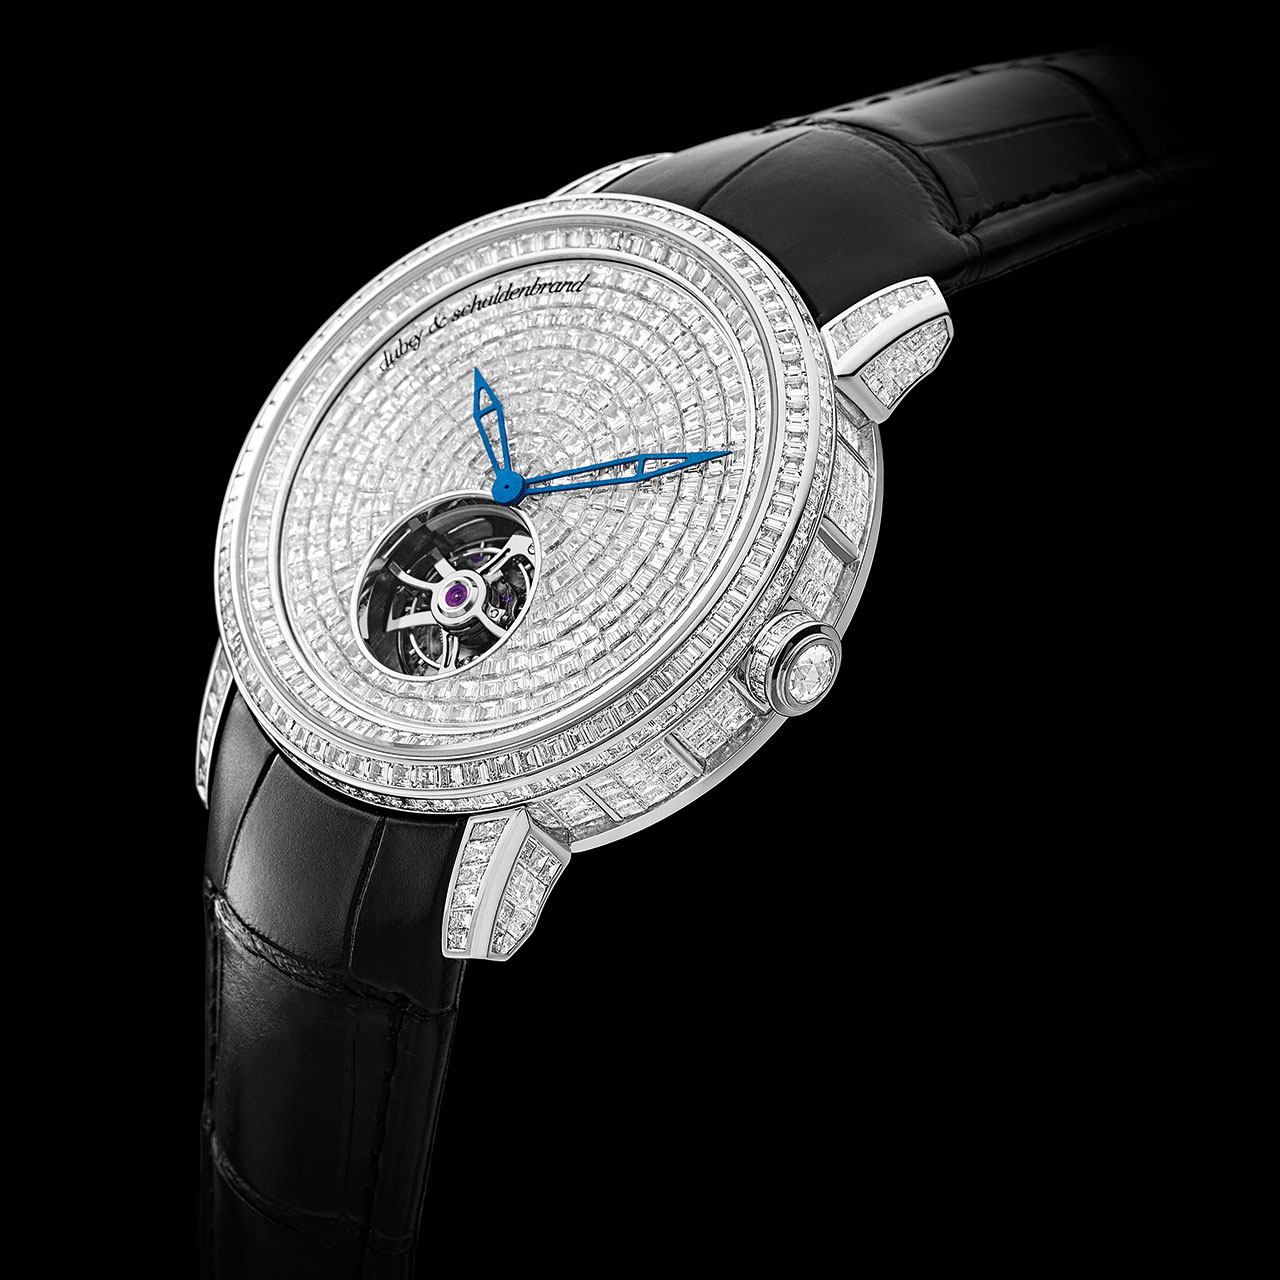 Dubey & Schaldenbrand Cœur Blanc Mechanical Hand-wound Tourbillon Watch